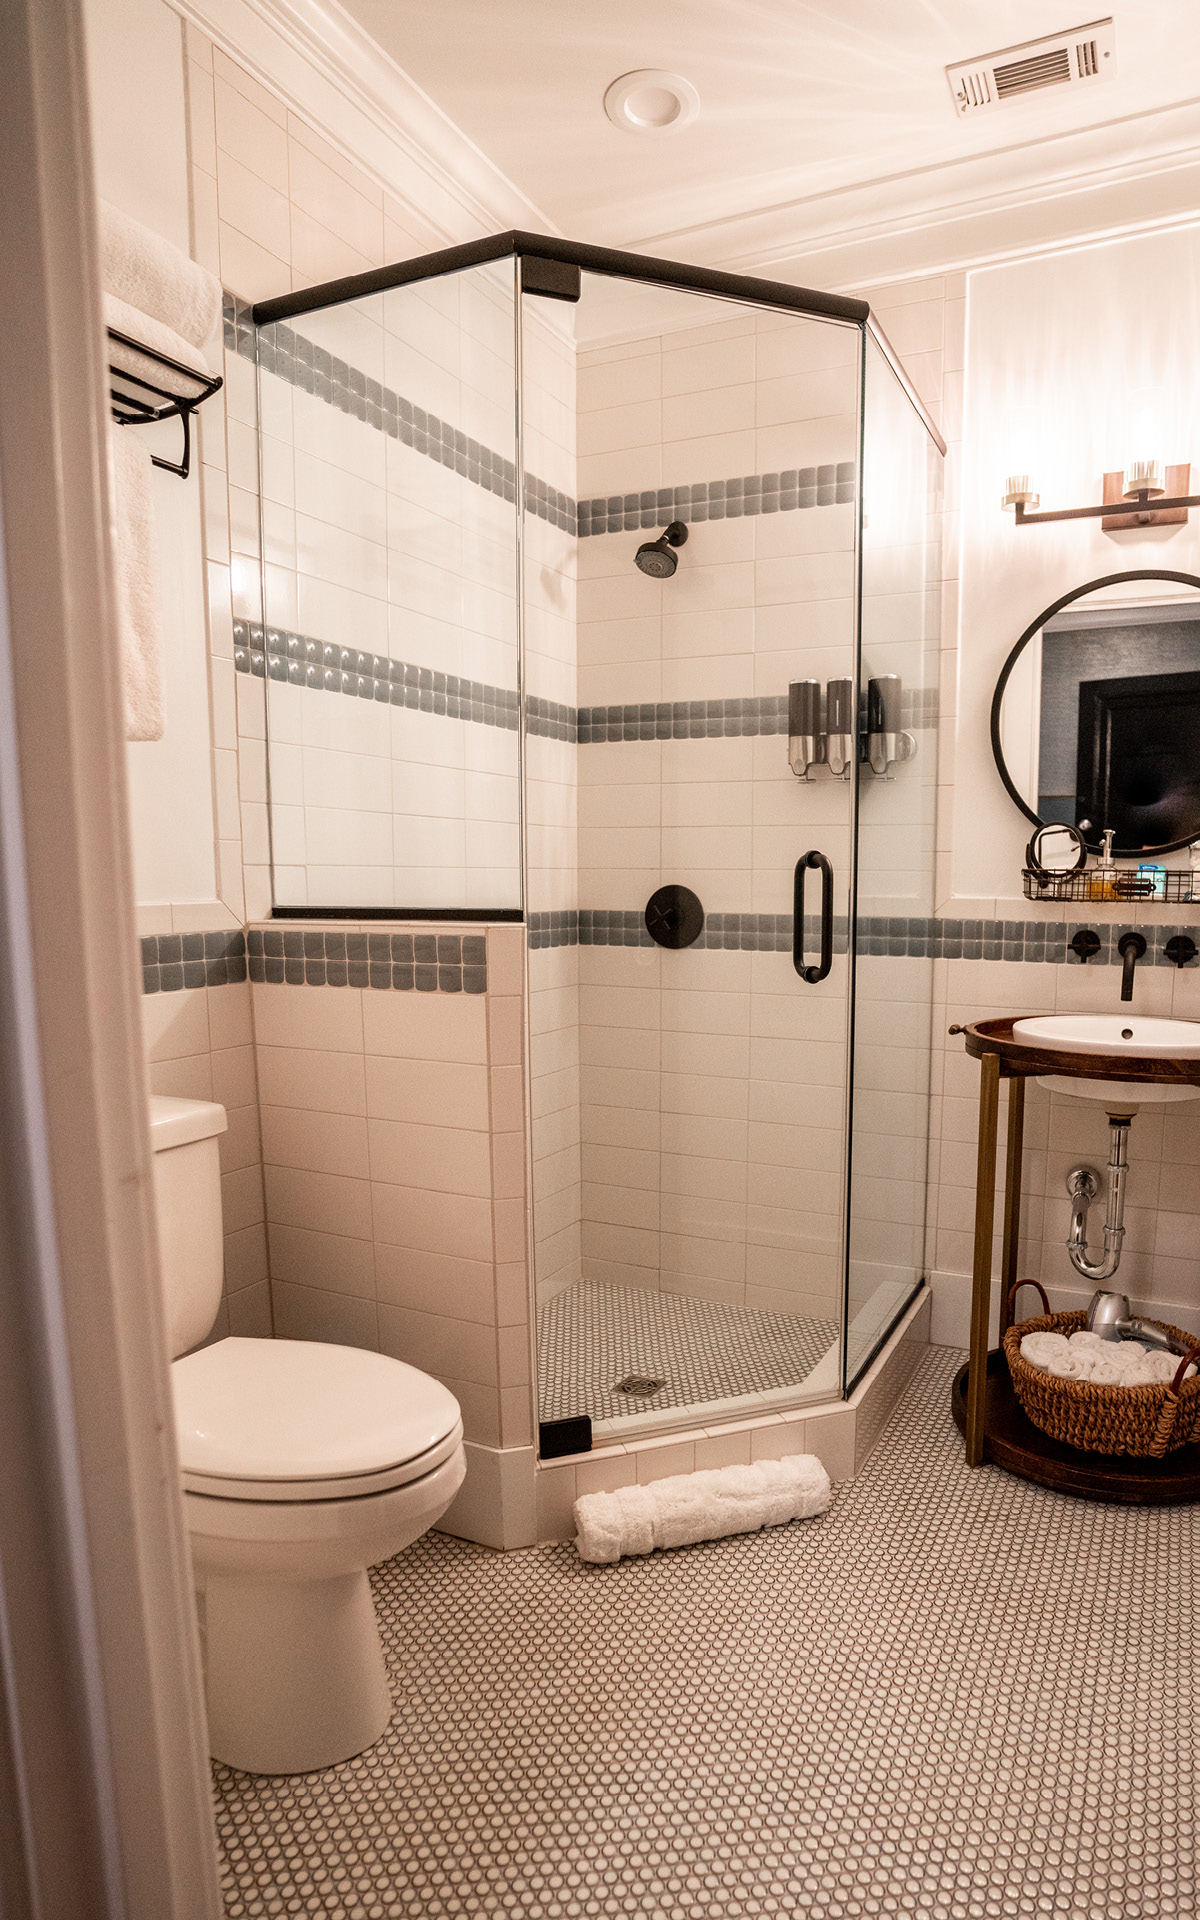 Large walk-in shower in another spotless bathroom